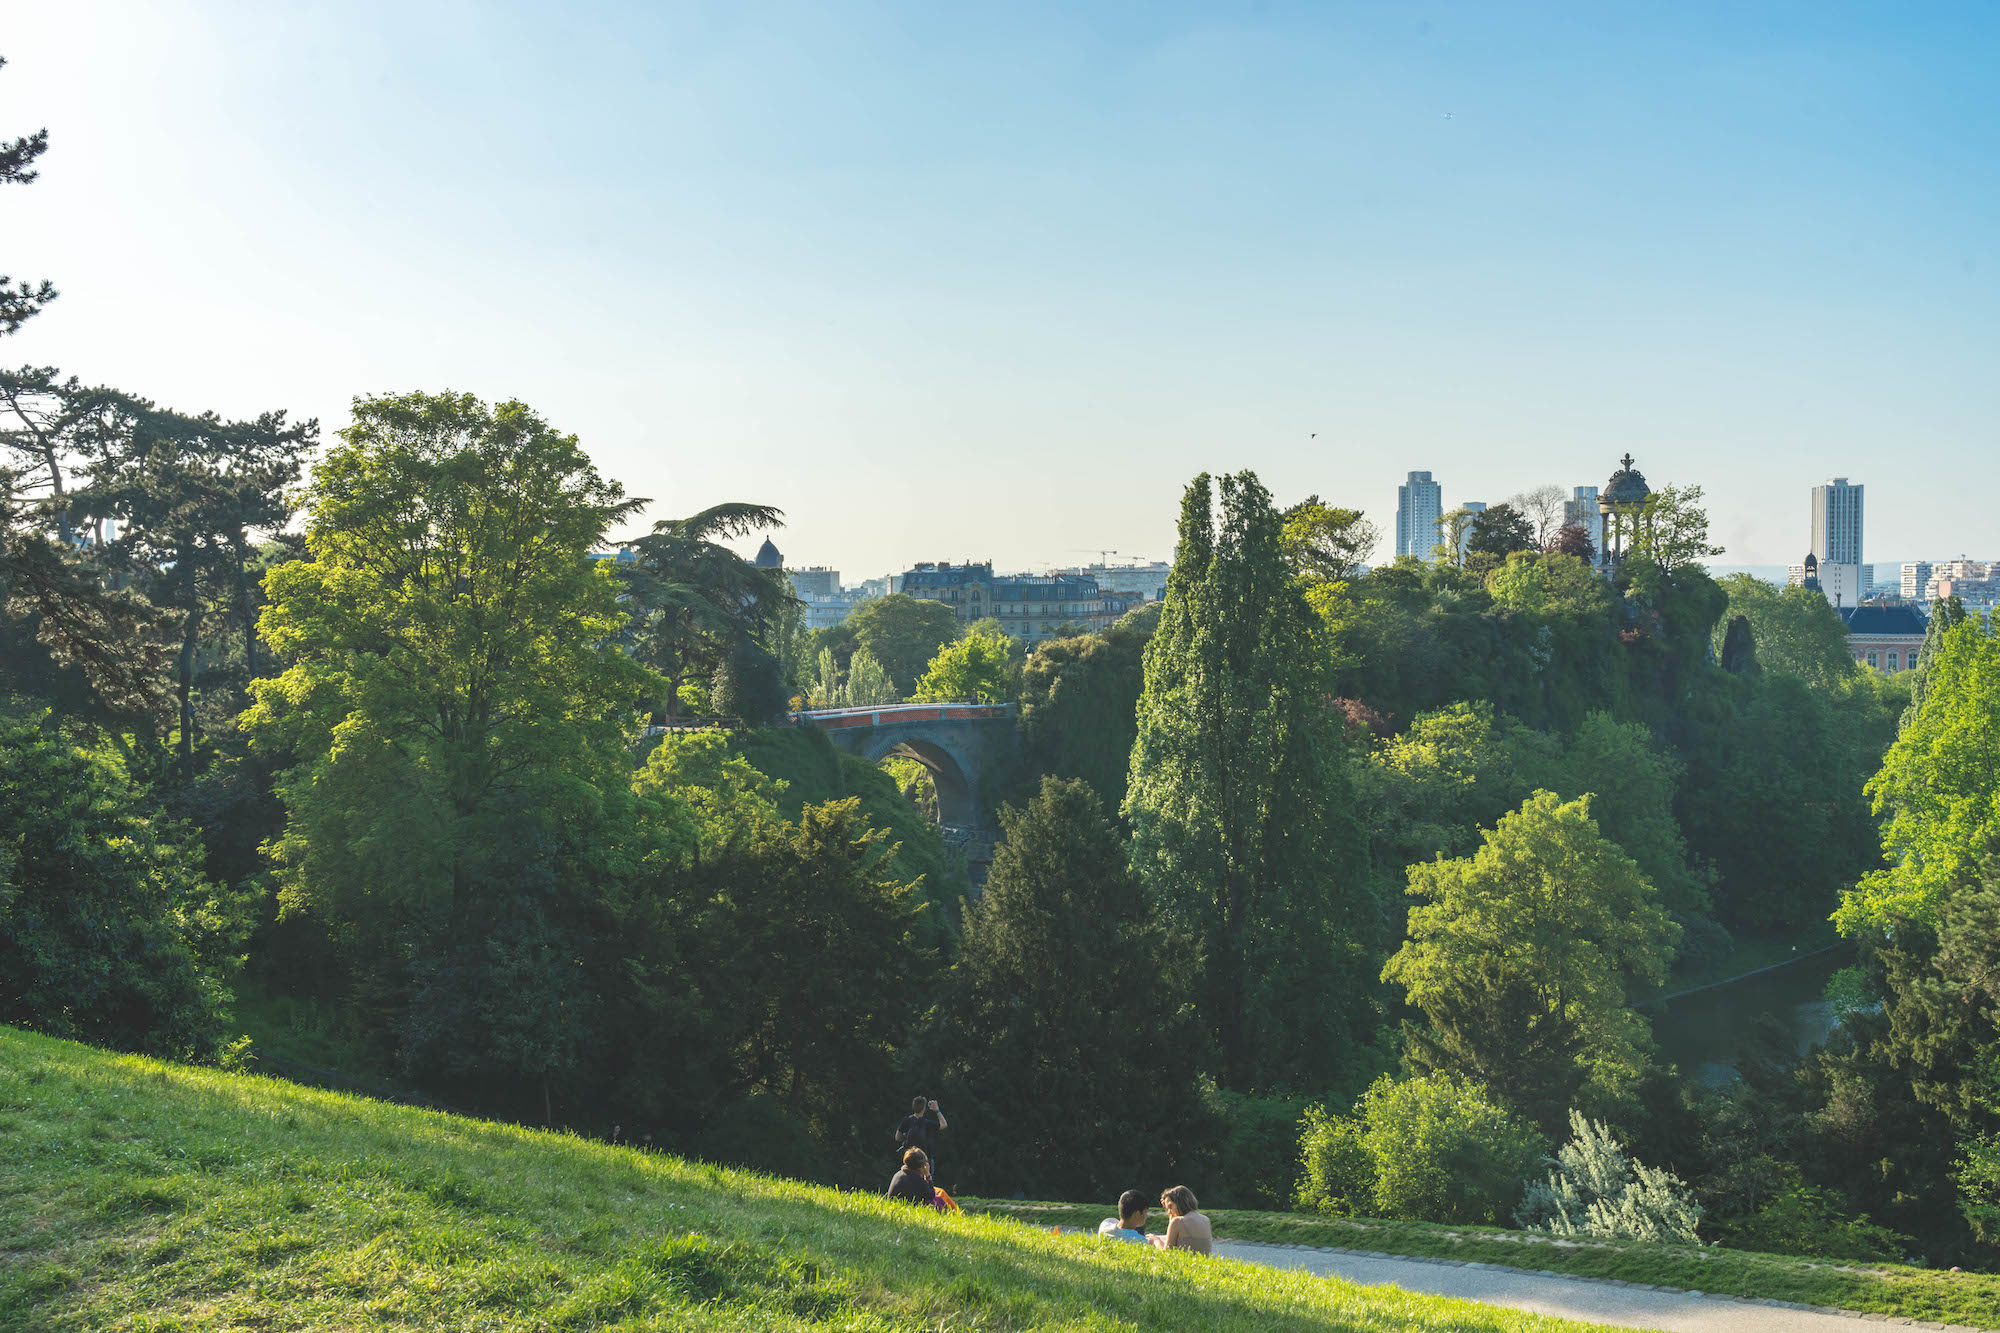 The Buttes Chaumont park is one of the pretties parks in Paris, especially in the summer.